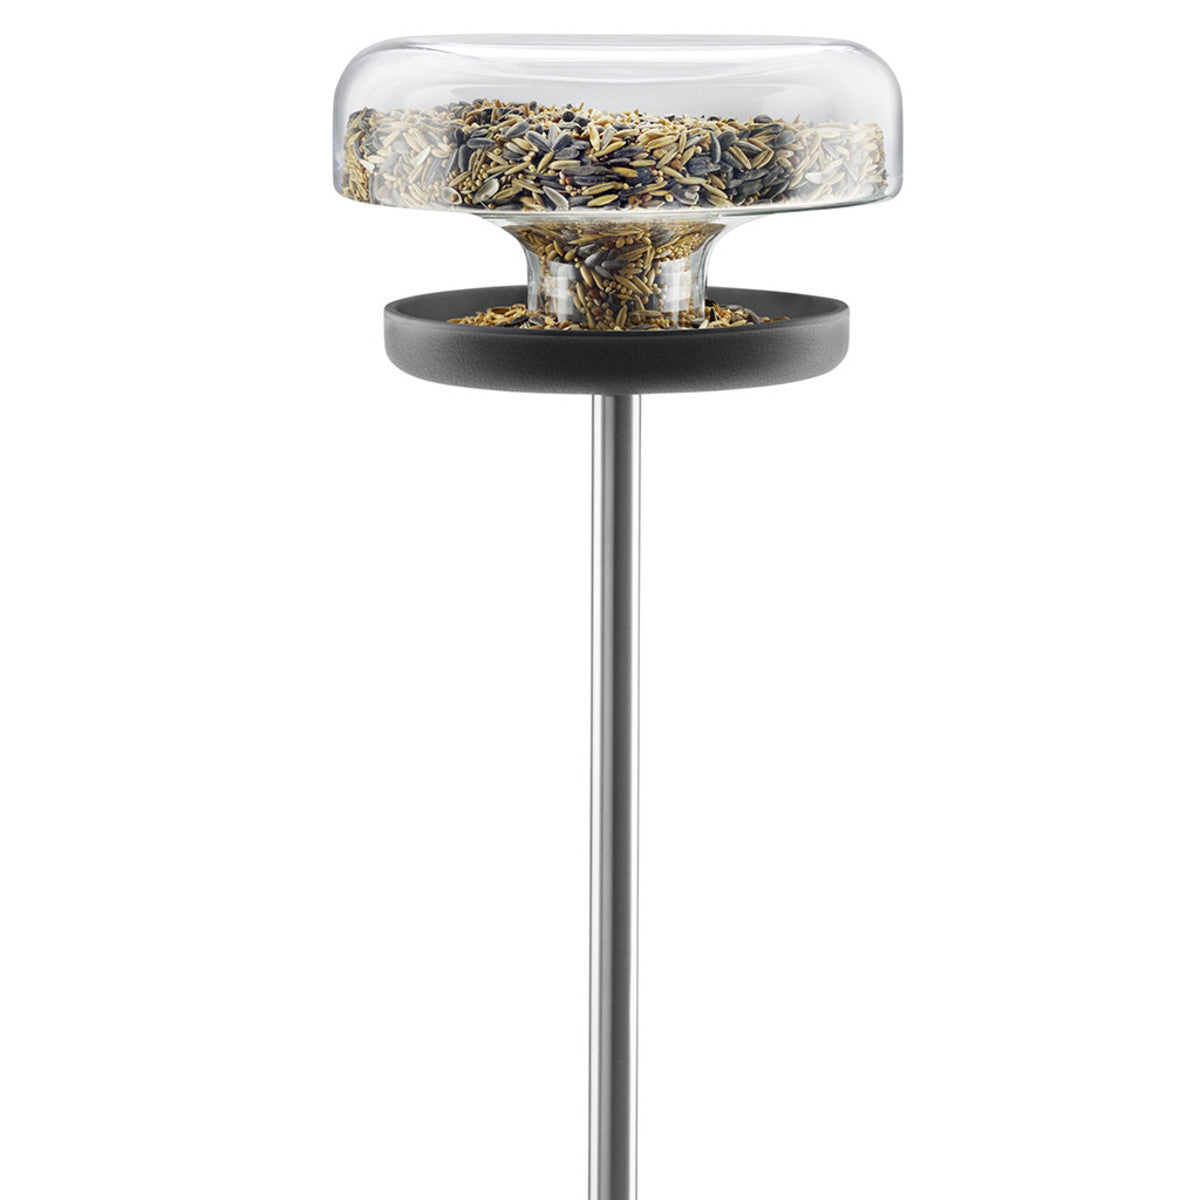 Eva Solo Bird Feeder Table 2.0l